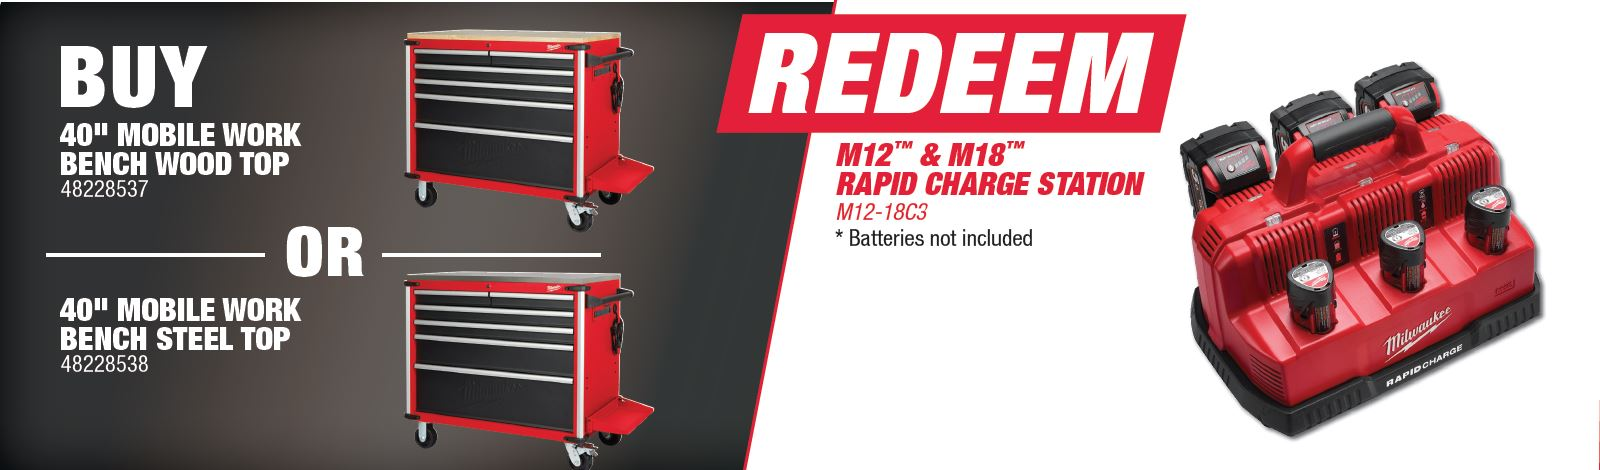 Buy Milwaukee 48228537 or 482228538 and Redeem M12-18C3